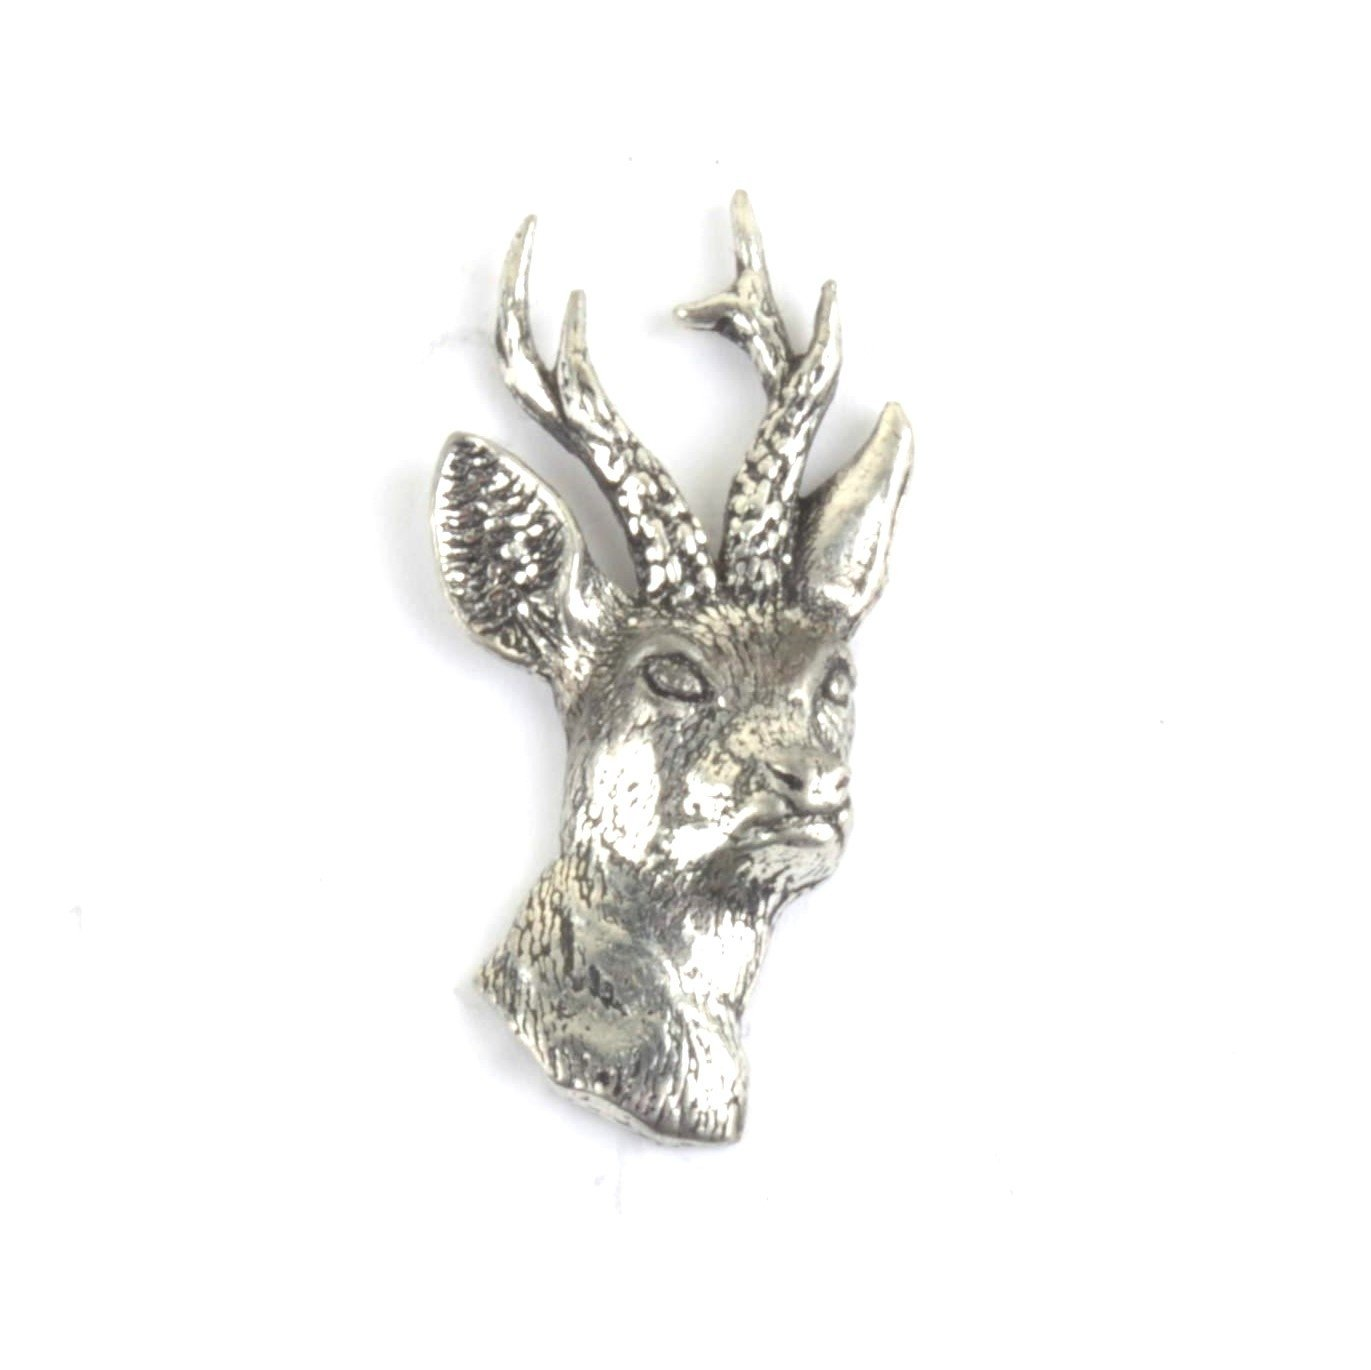 Deer Stag Head Pewter Lapel Pin Badge - Minimum Mouse